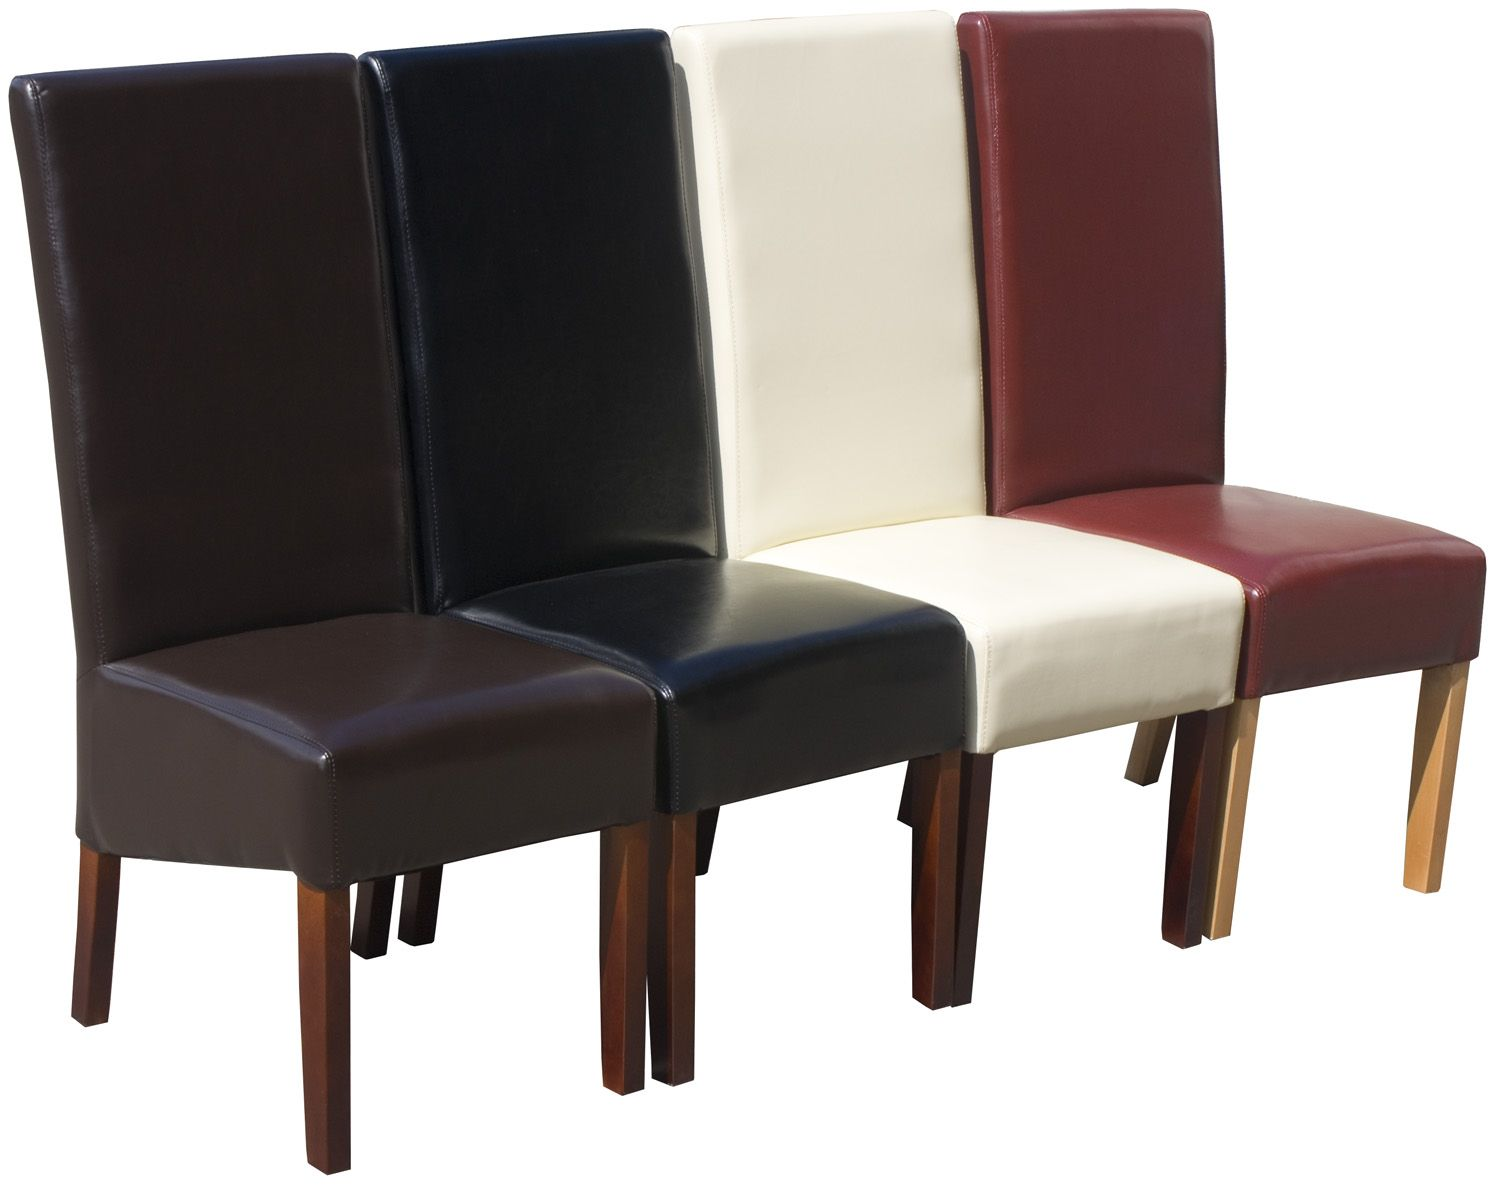 faux leather restaurant dining chairs. faux leather mayfair high back dining chair restaurant chairs e